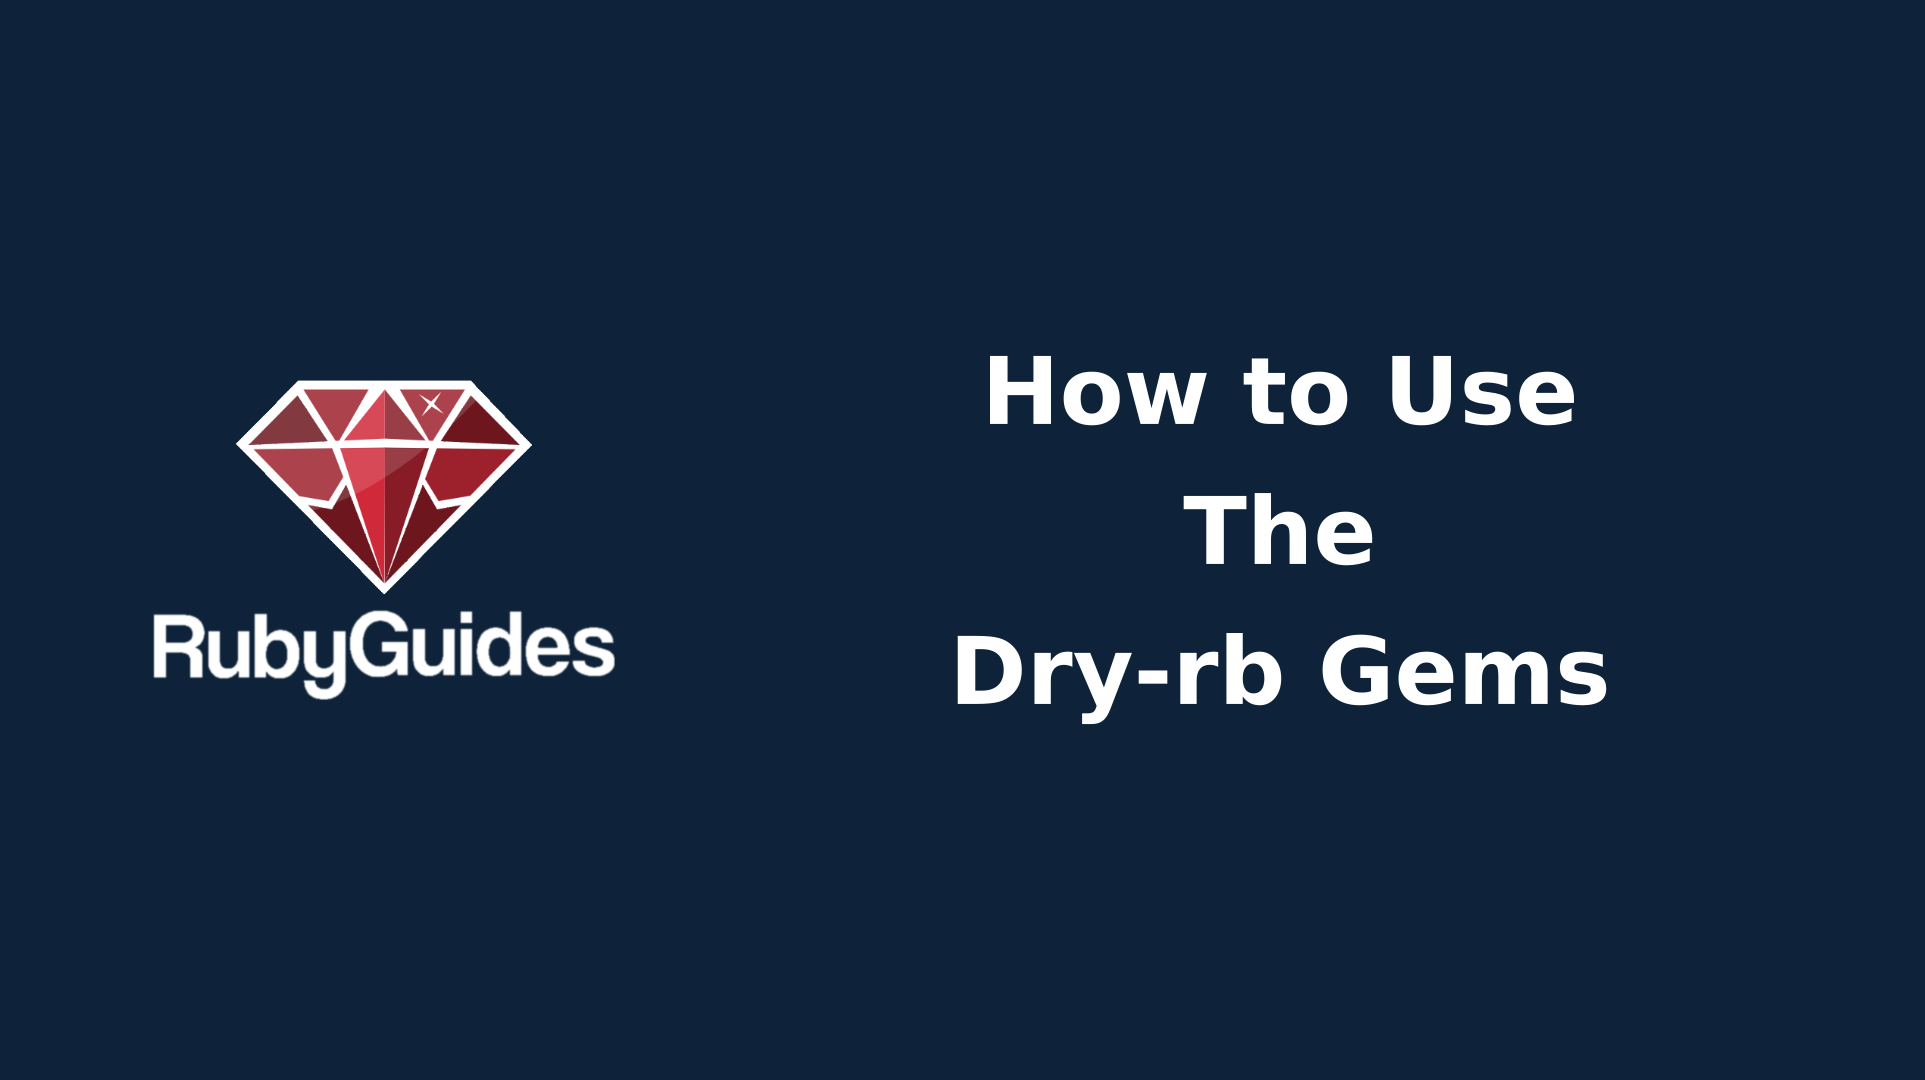 What is Dry-rb?